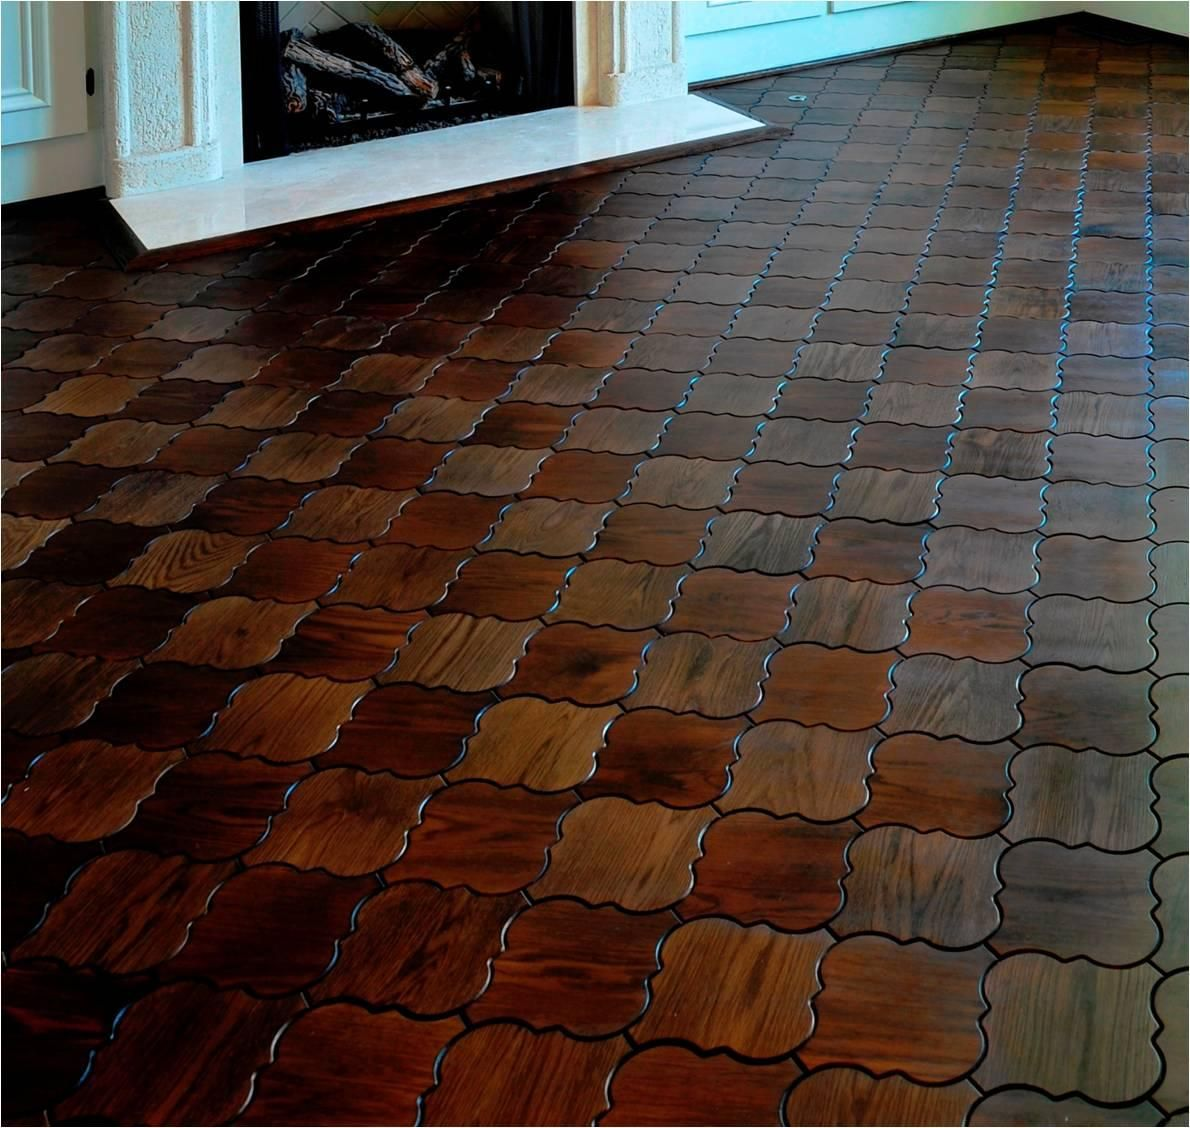 Another view of these amazing tiles. I saw them used on